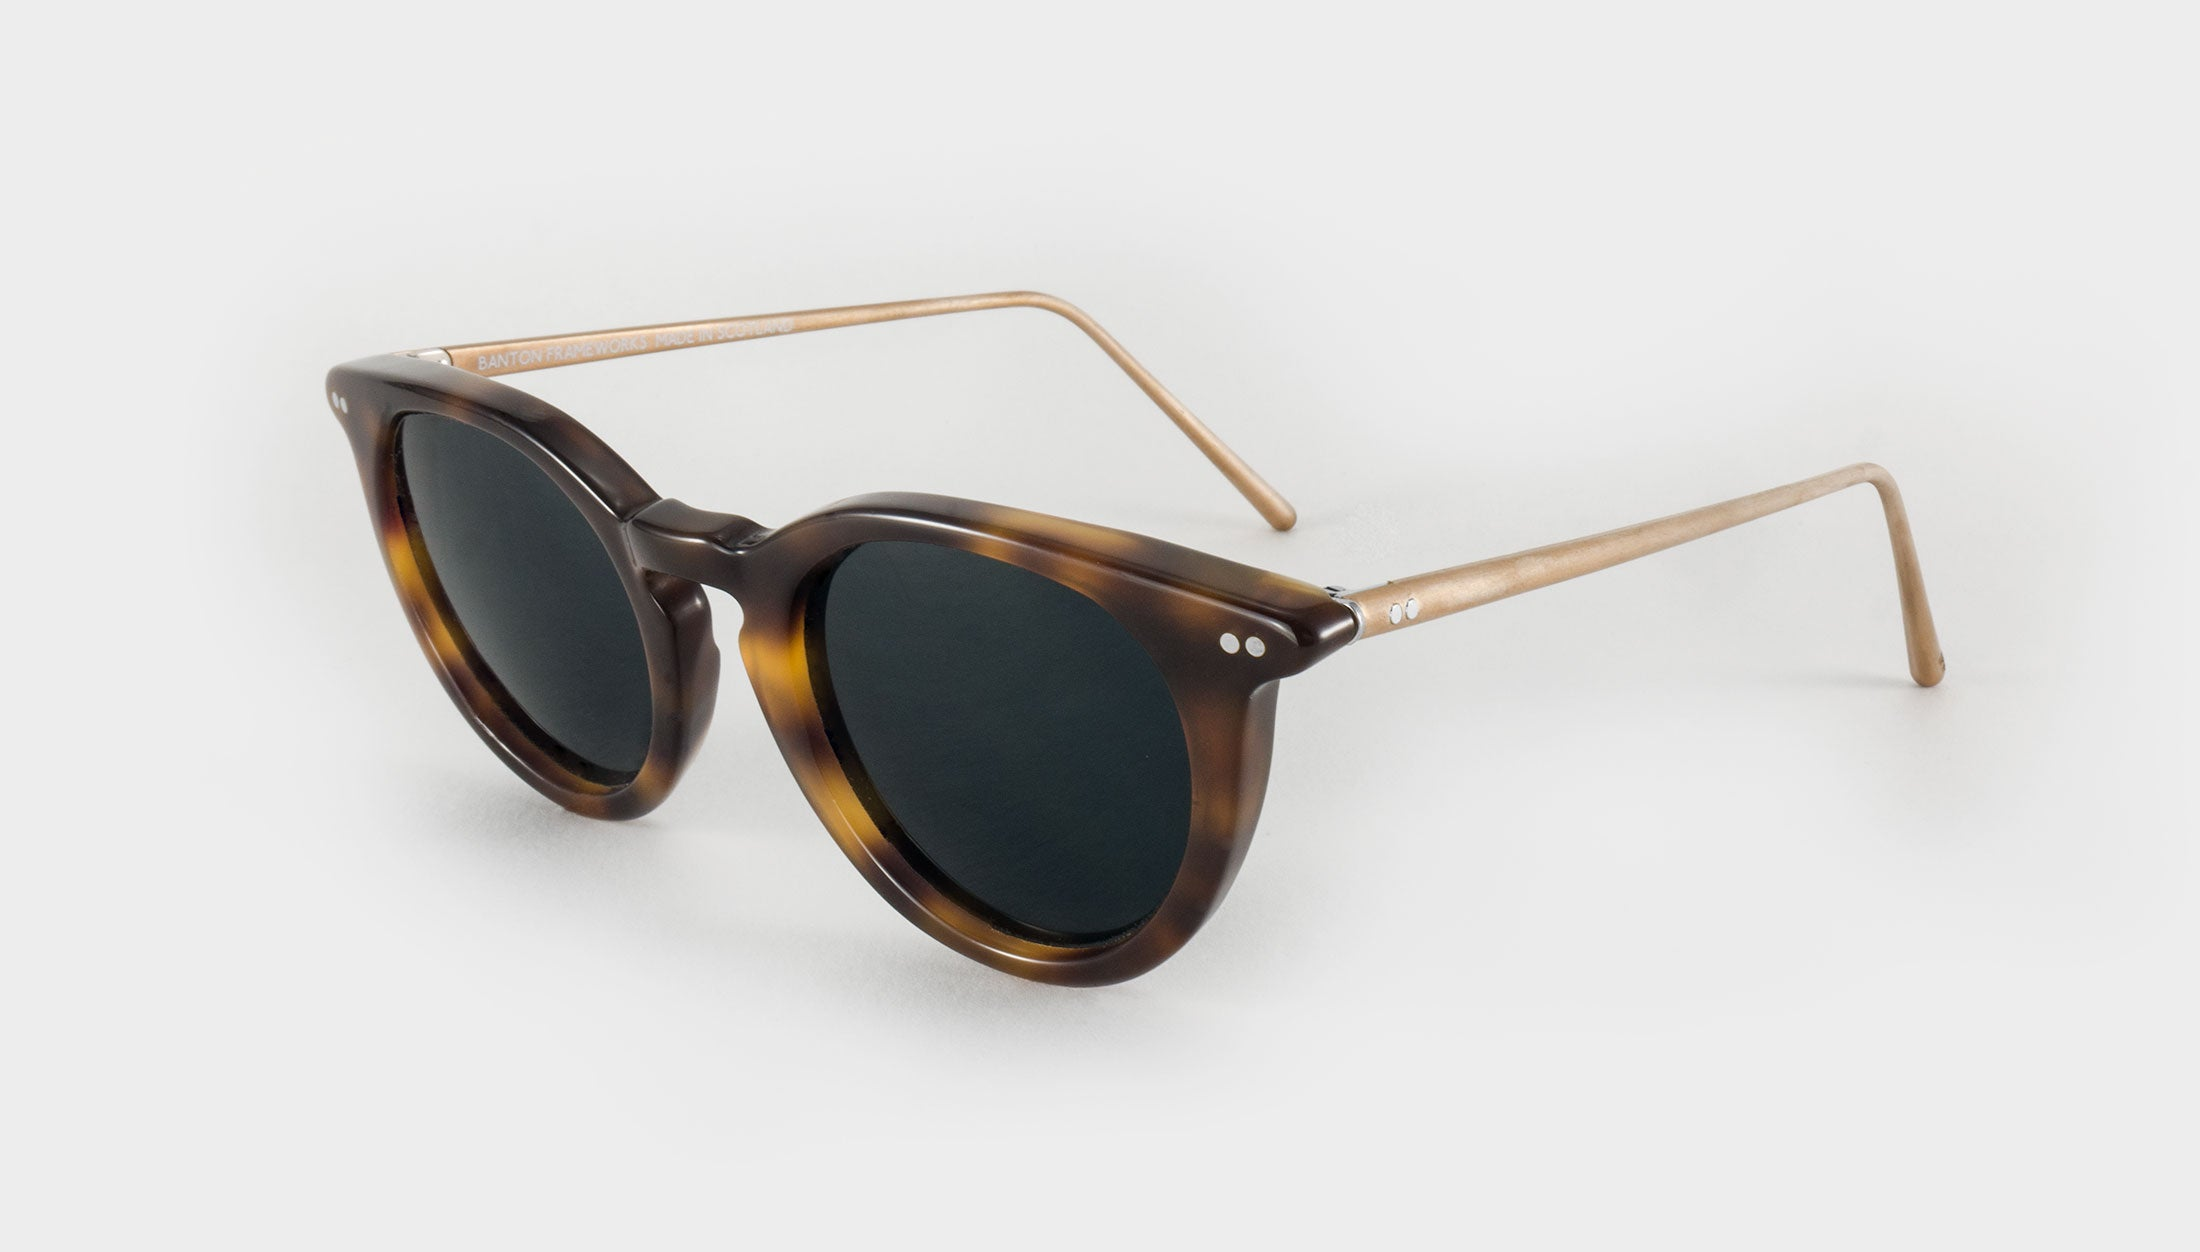 womens round tortoiseshell sunglasses side view